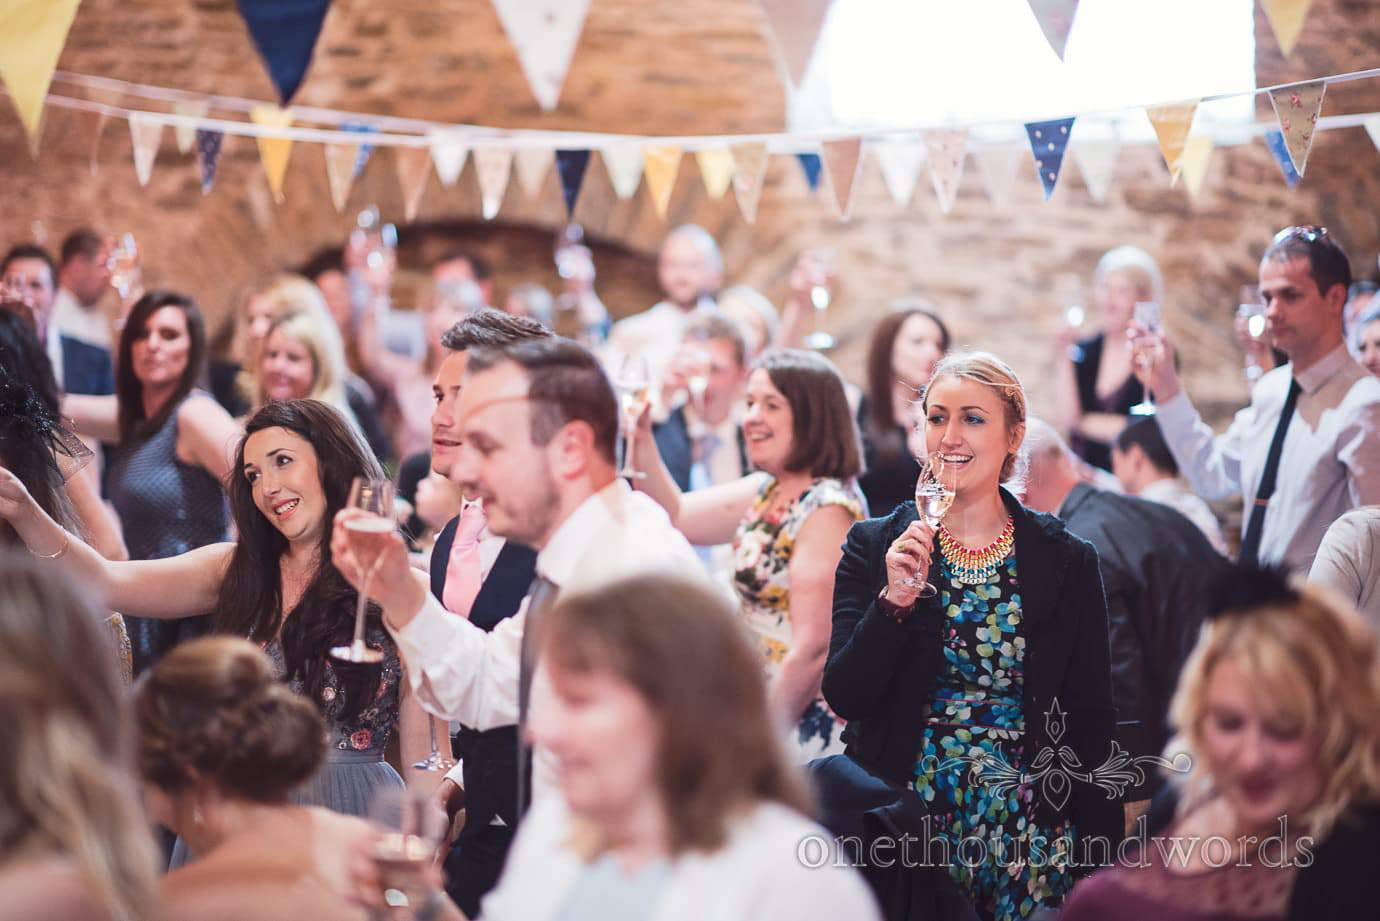 Wedding guests raise a toast during speeches at rustic barn wedding with bunting